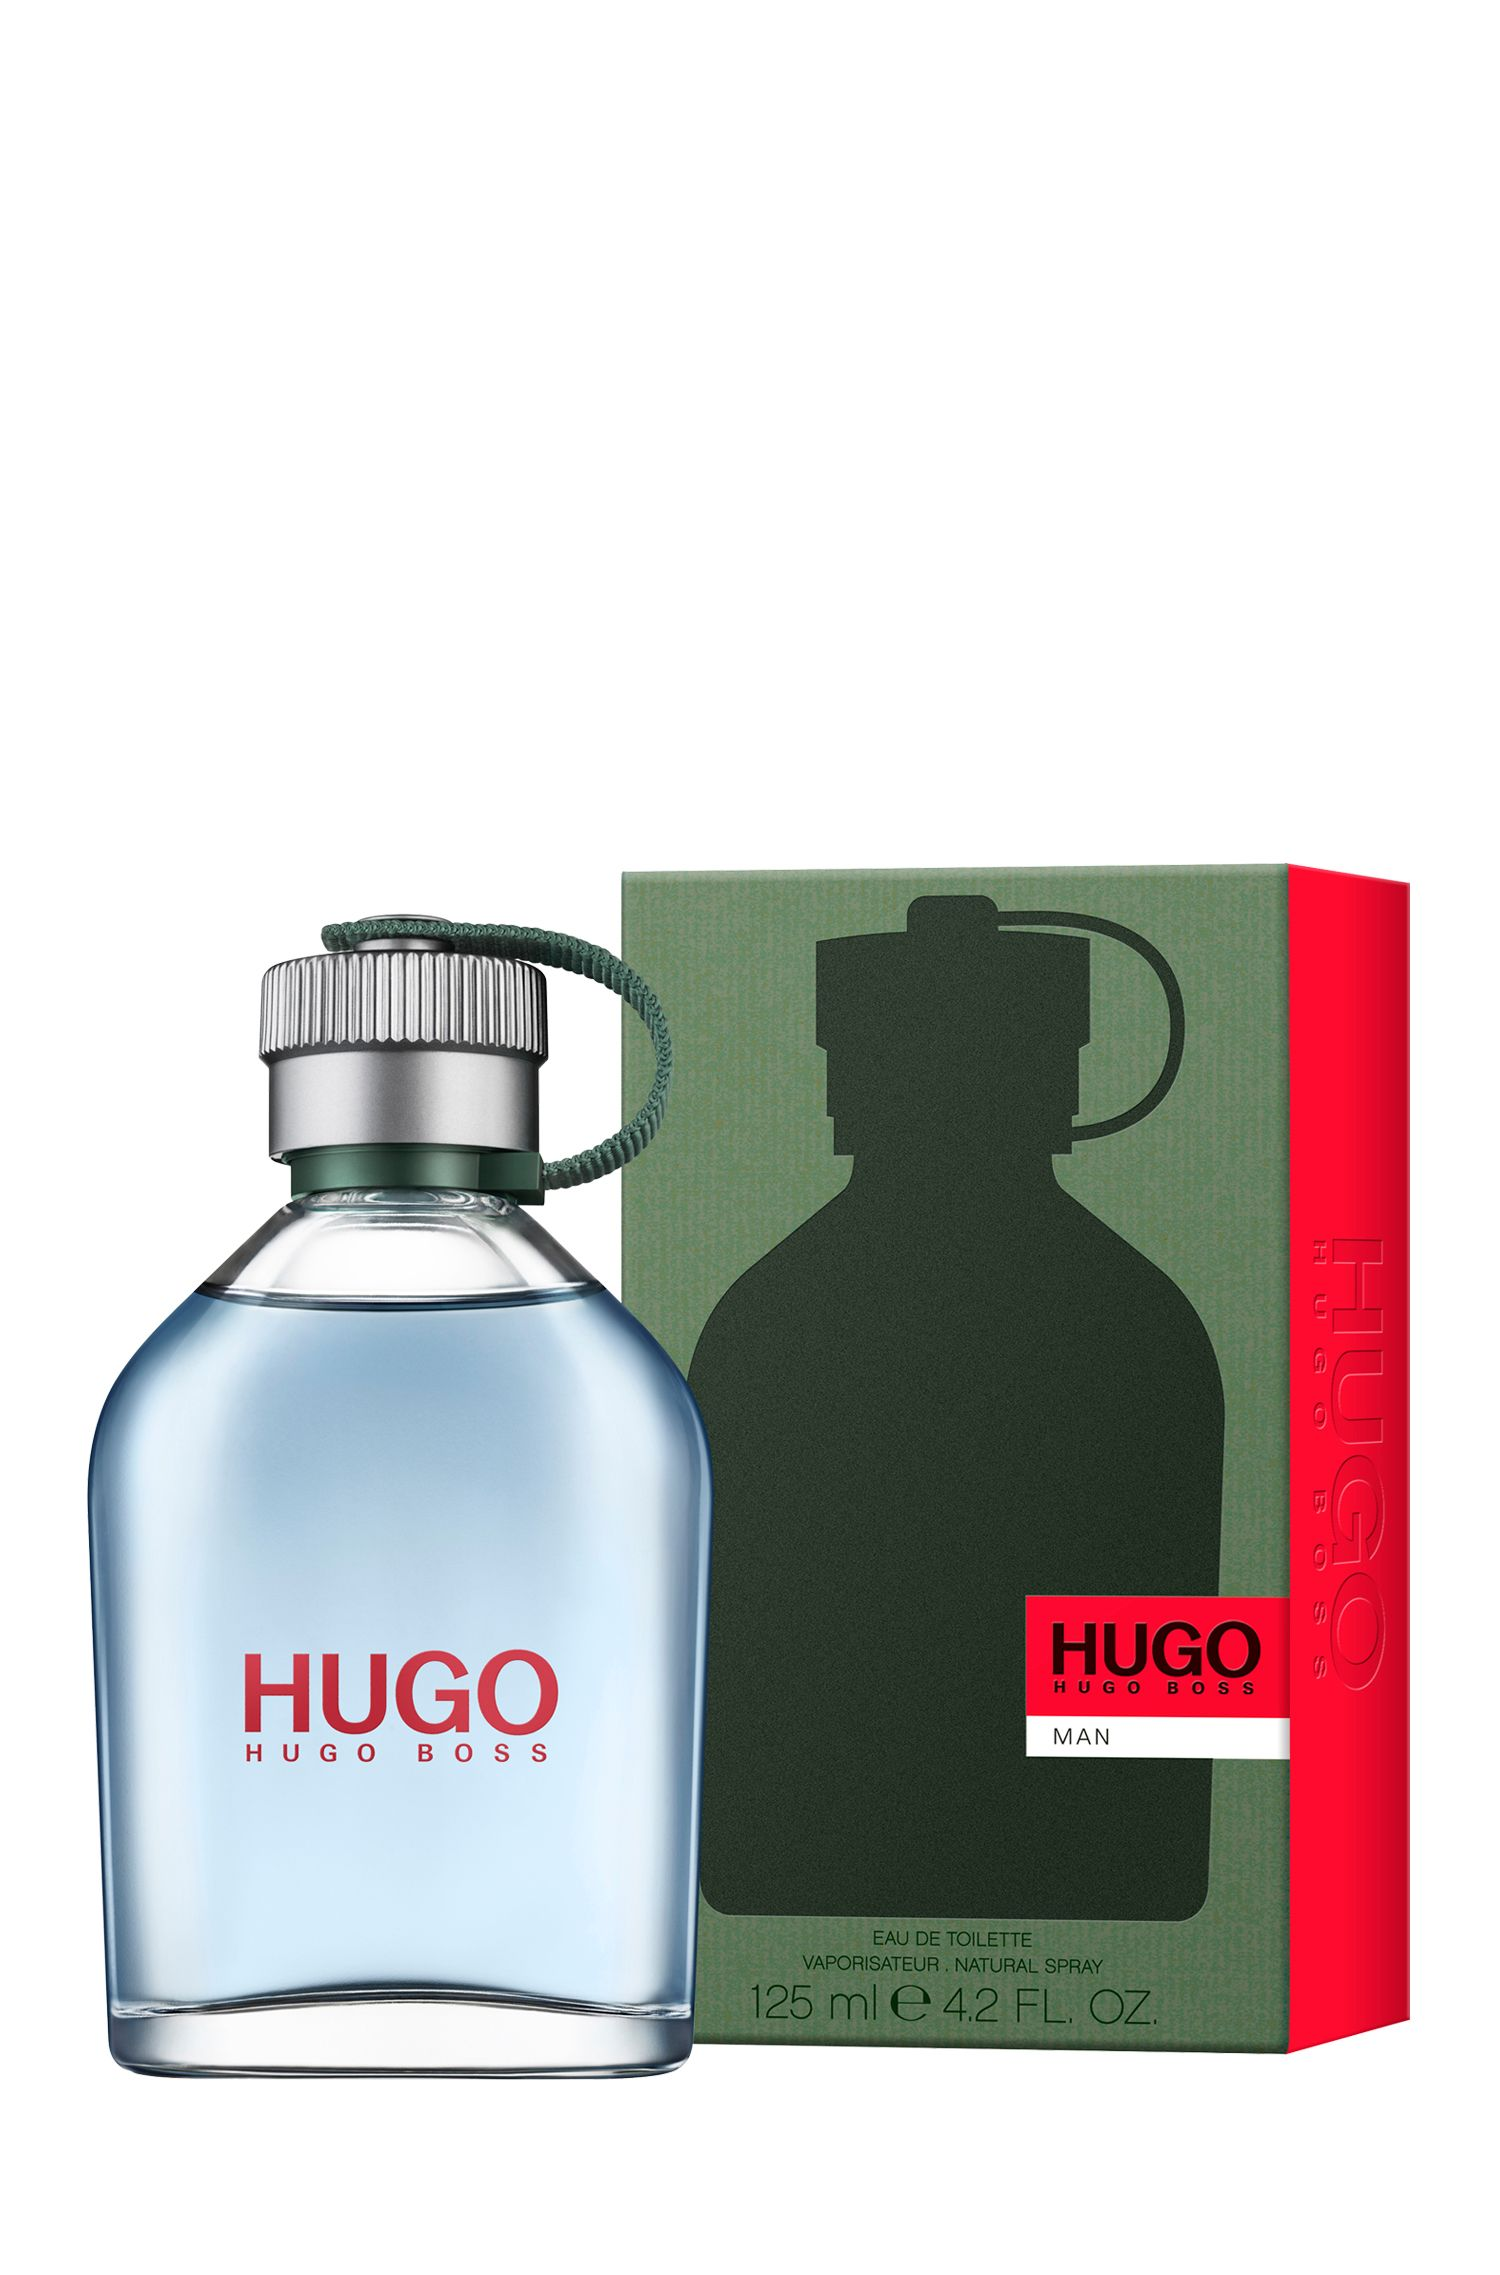 Eau de Toilette HUGO Man, 125 ml , Assorted-Pre-Pack